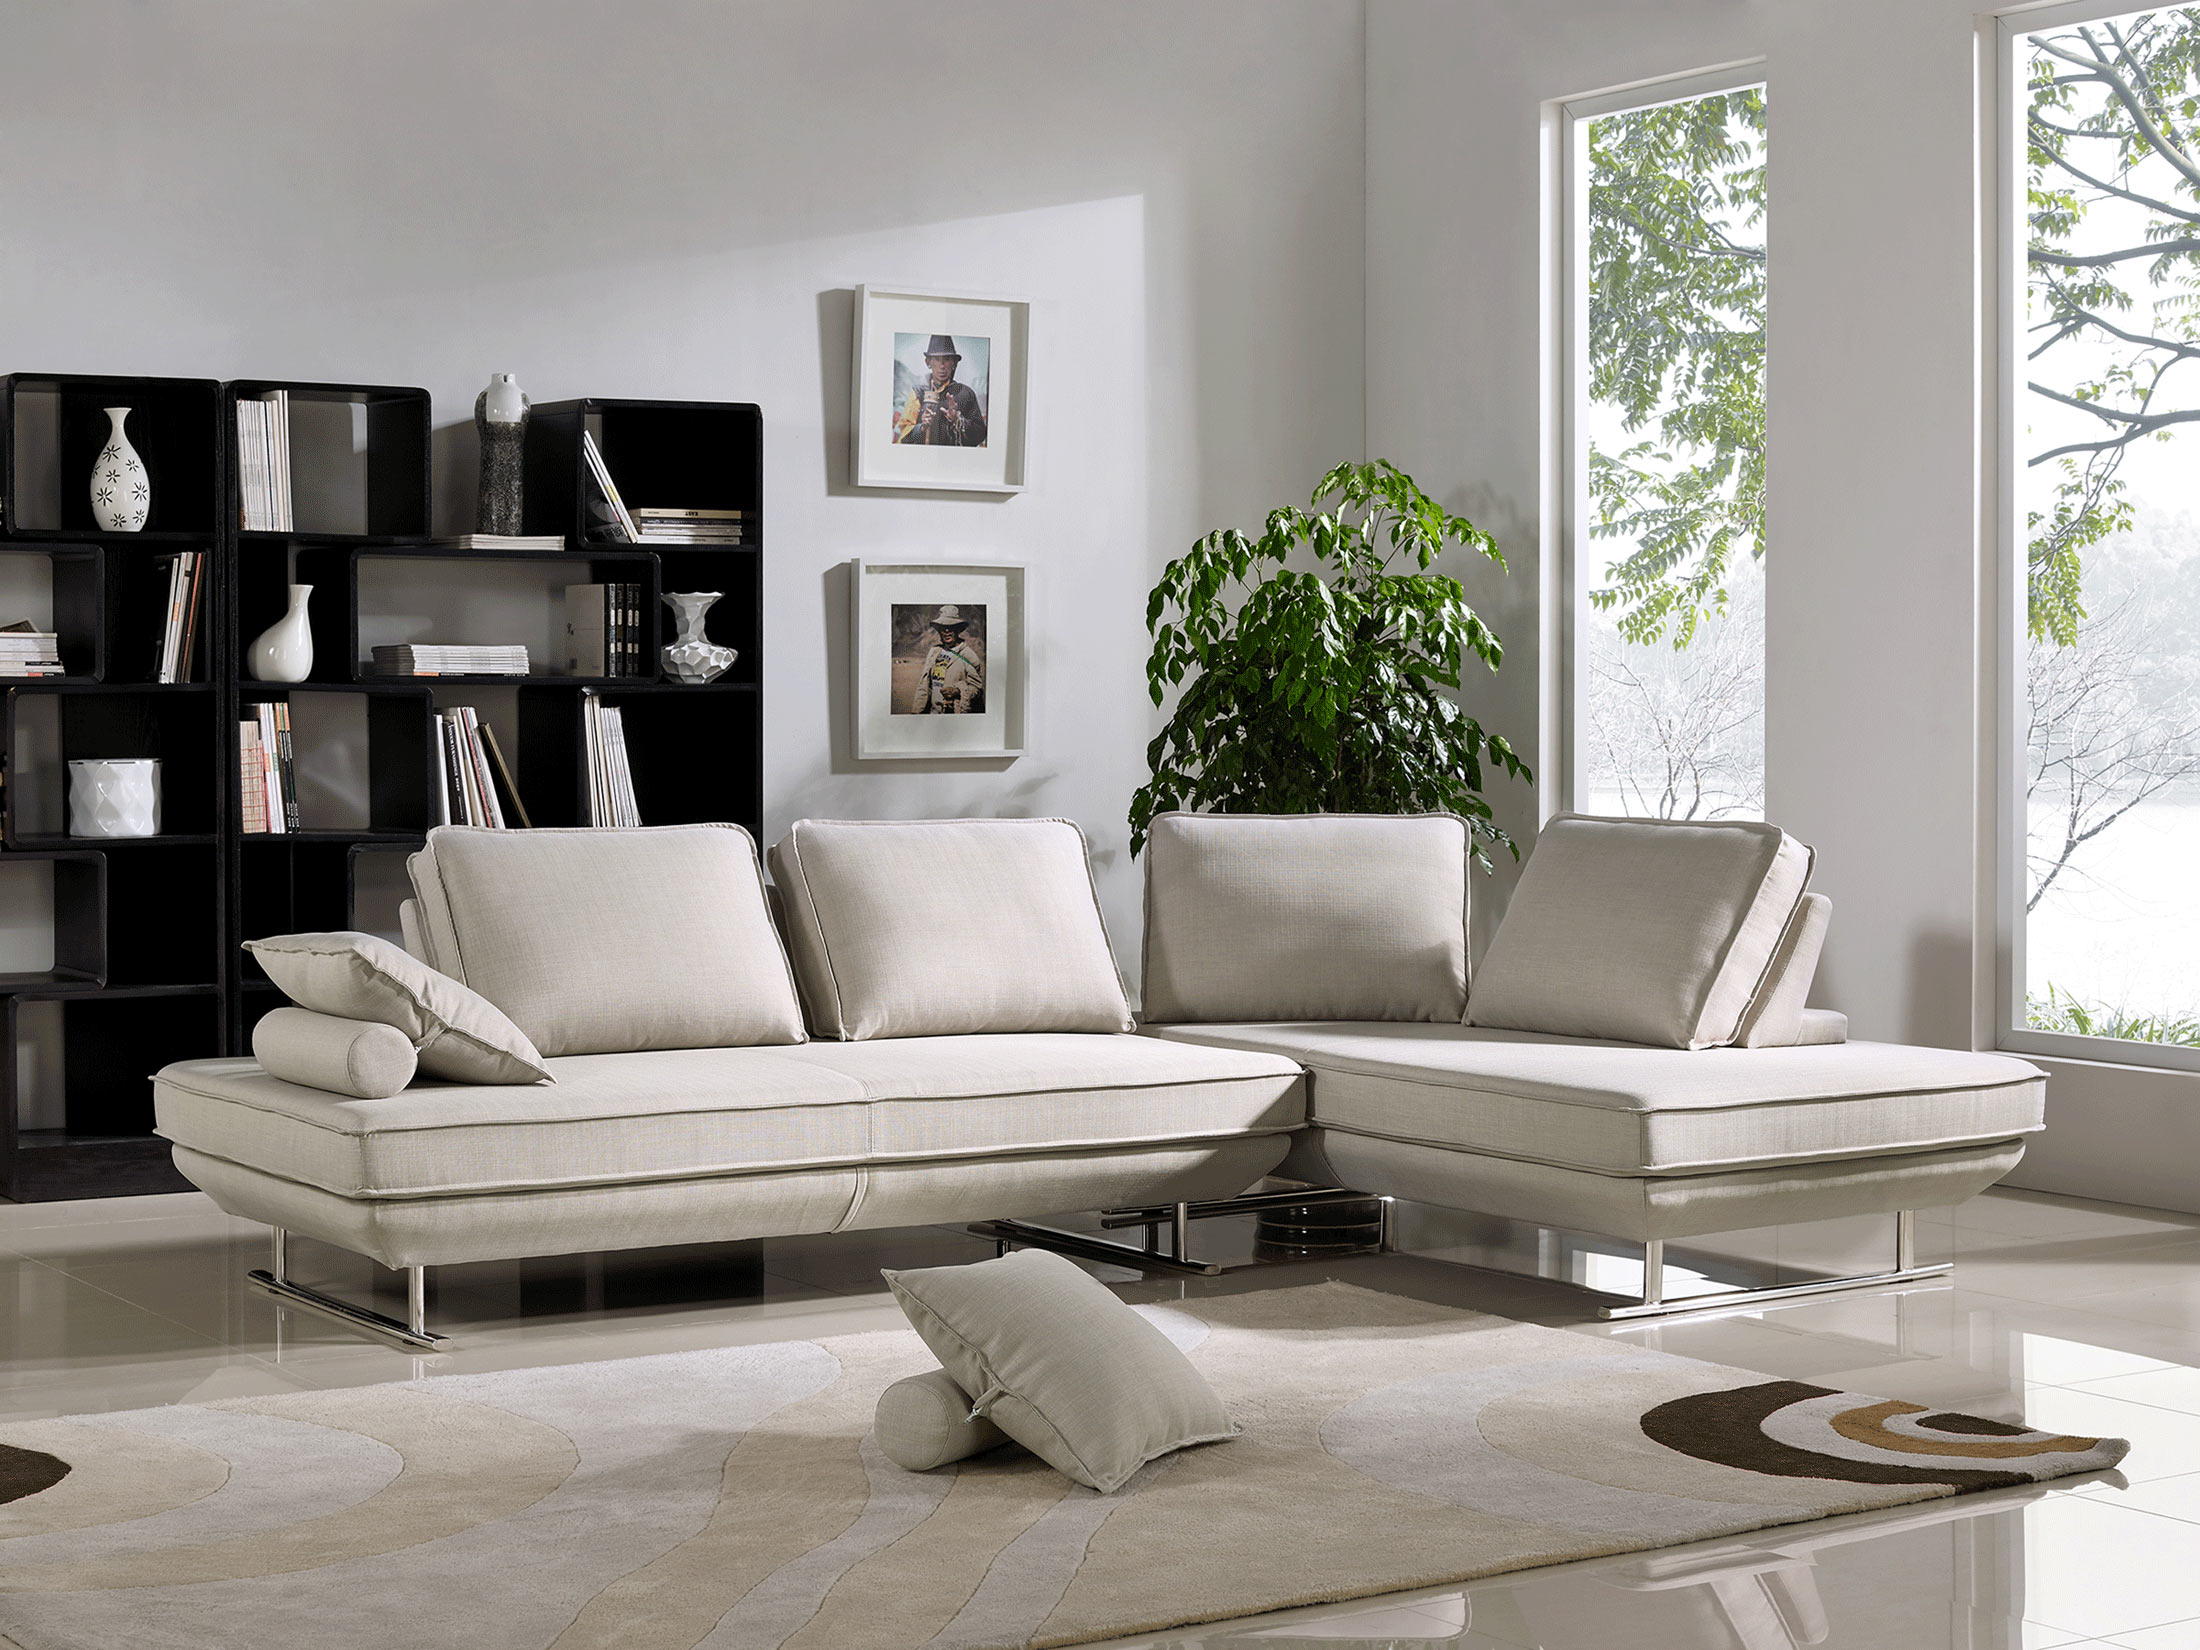 Terrific Bergamo Conversible Sectional Beige By Esf Uwap Interior Chair Design Uwaporg